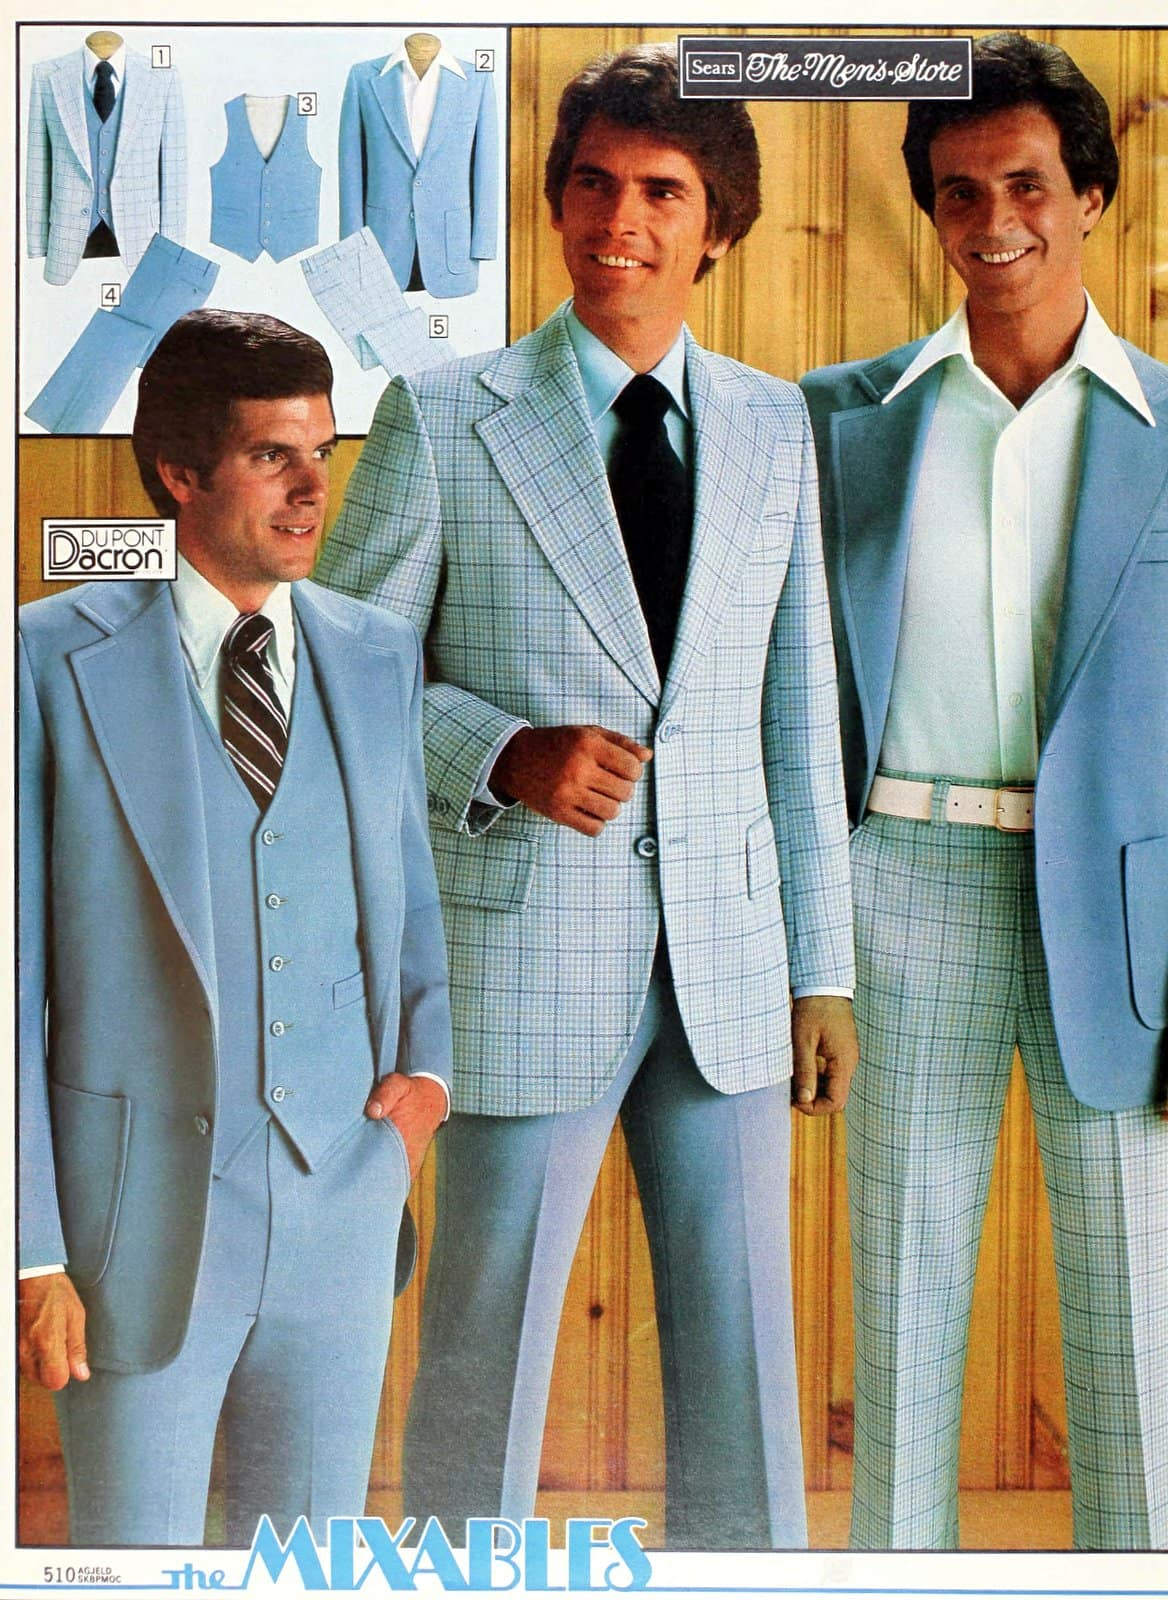 Sears suits and menswear from the 1970s (5)